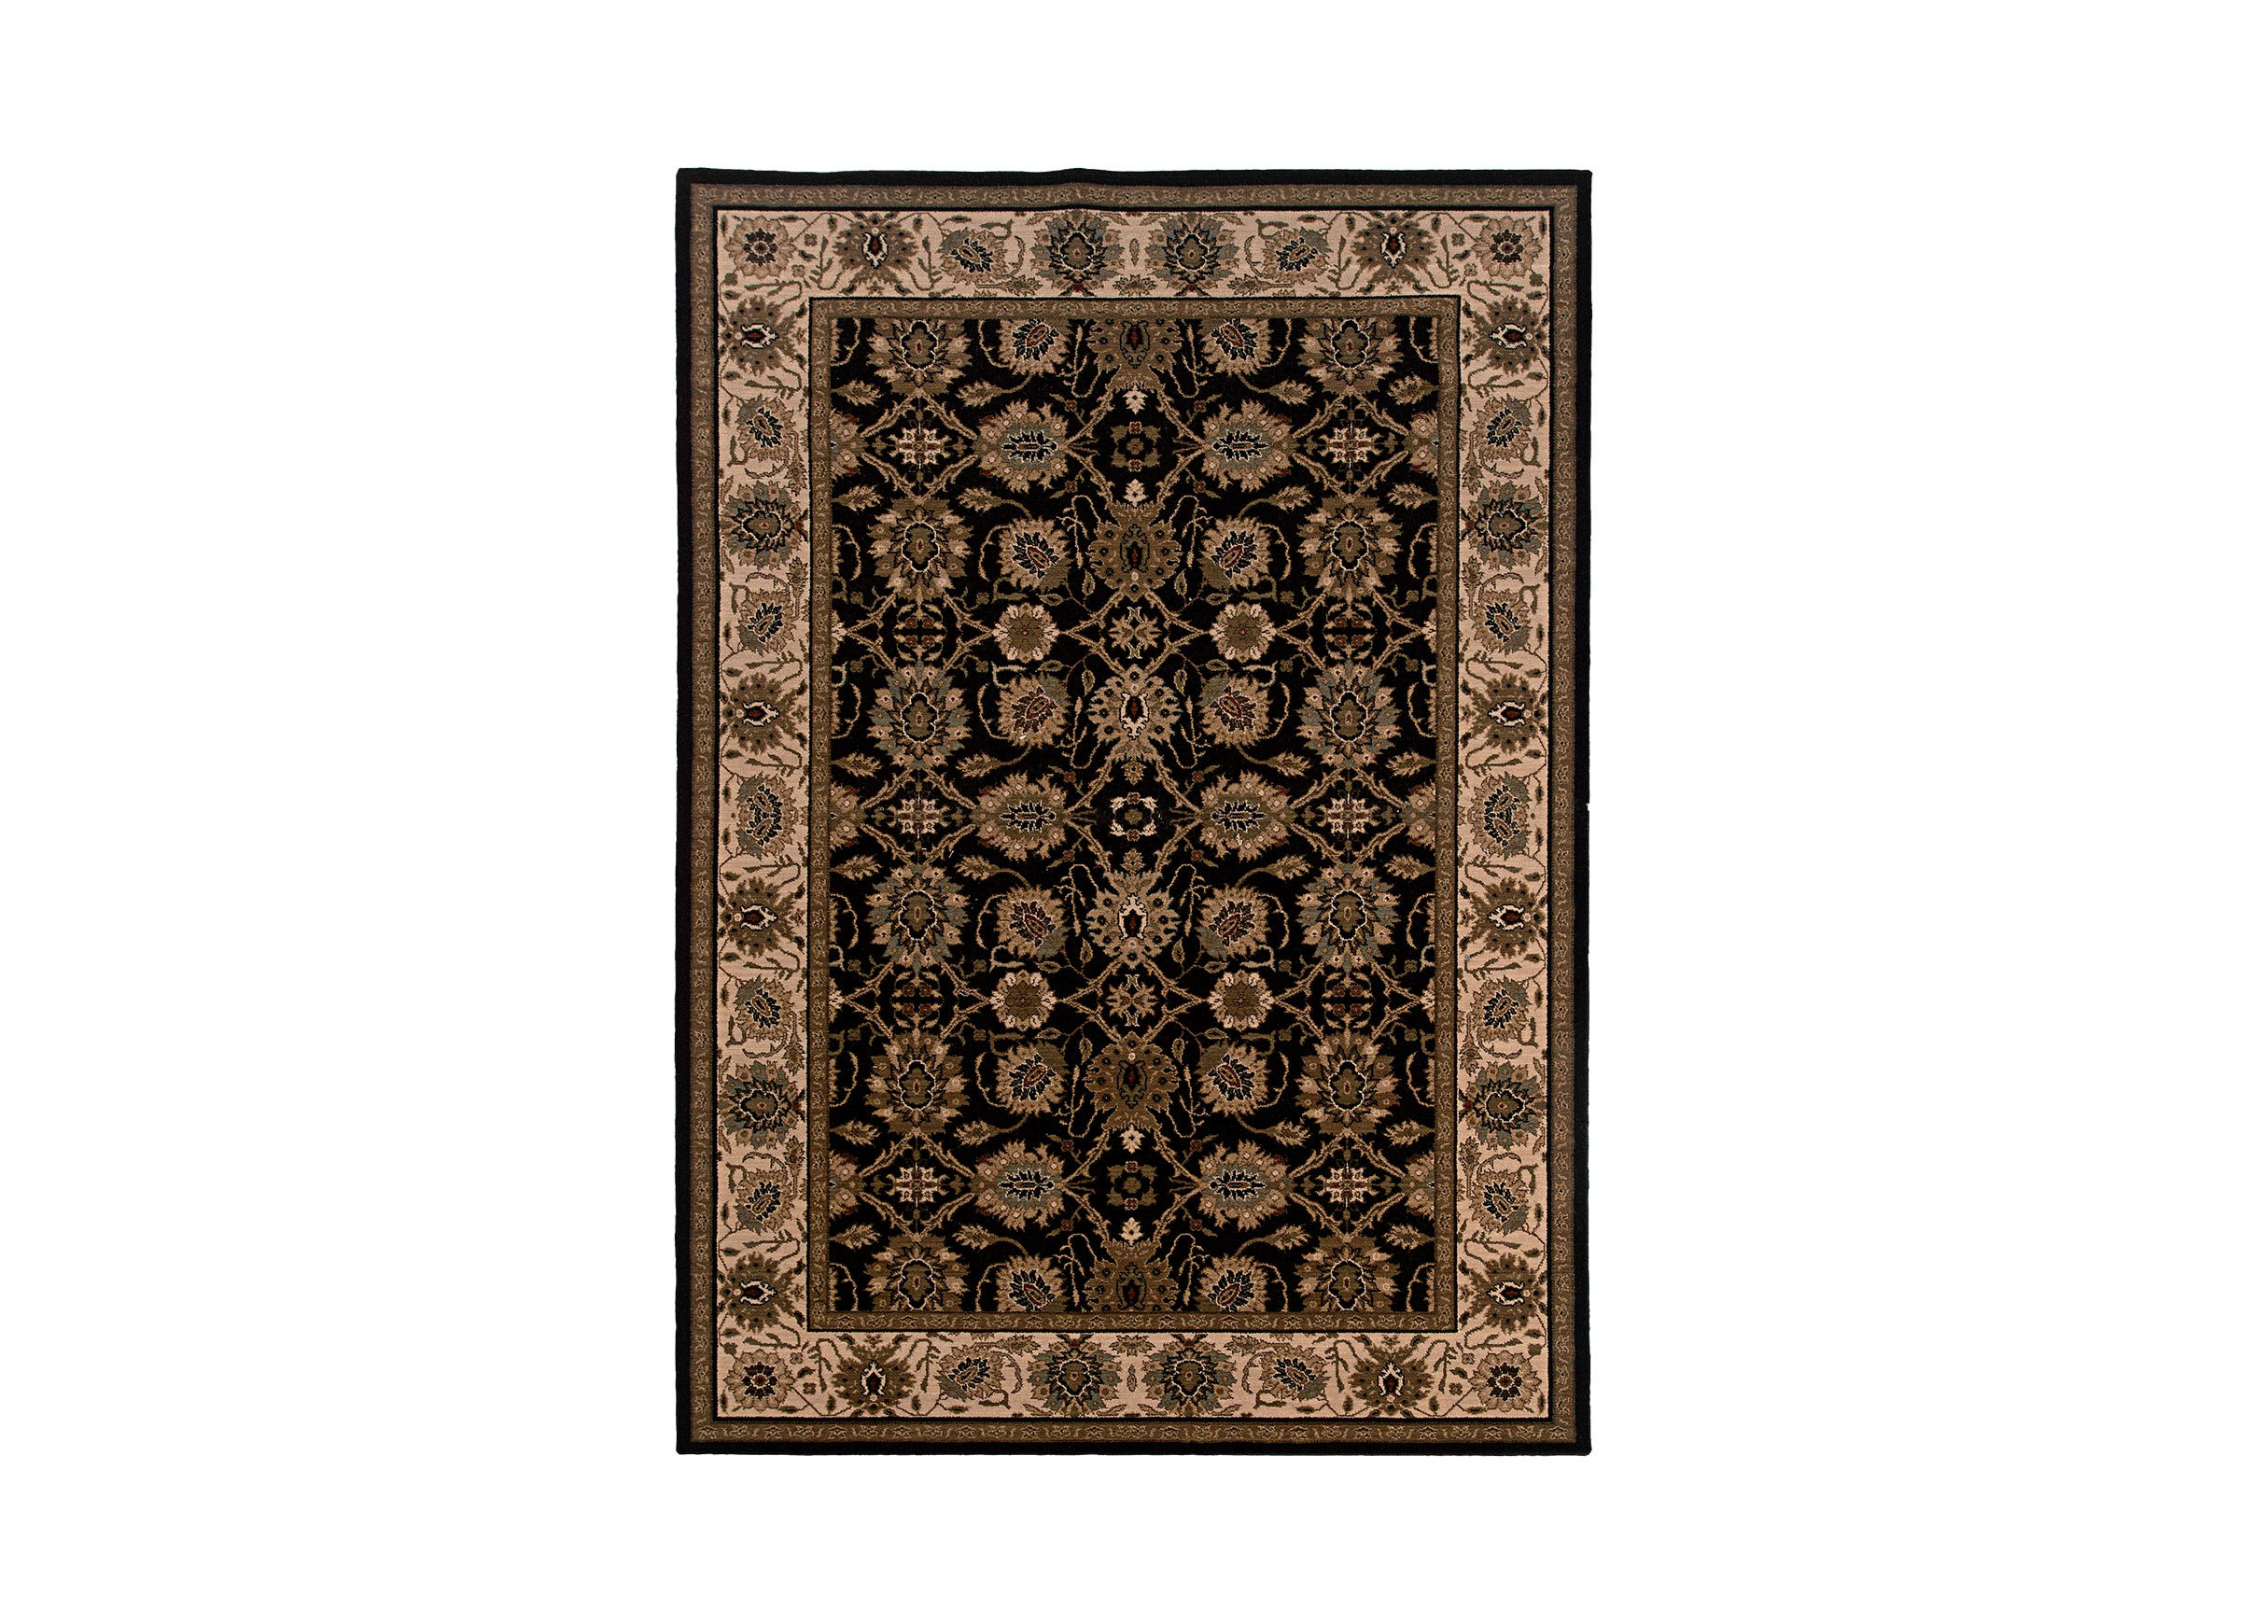 Sultanabad Area Rug Black Ivory Traditional Patterned Rugs